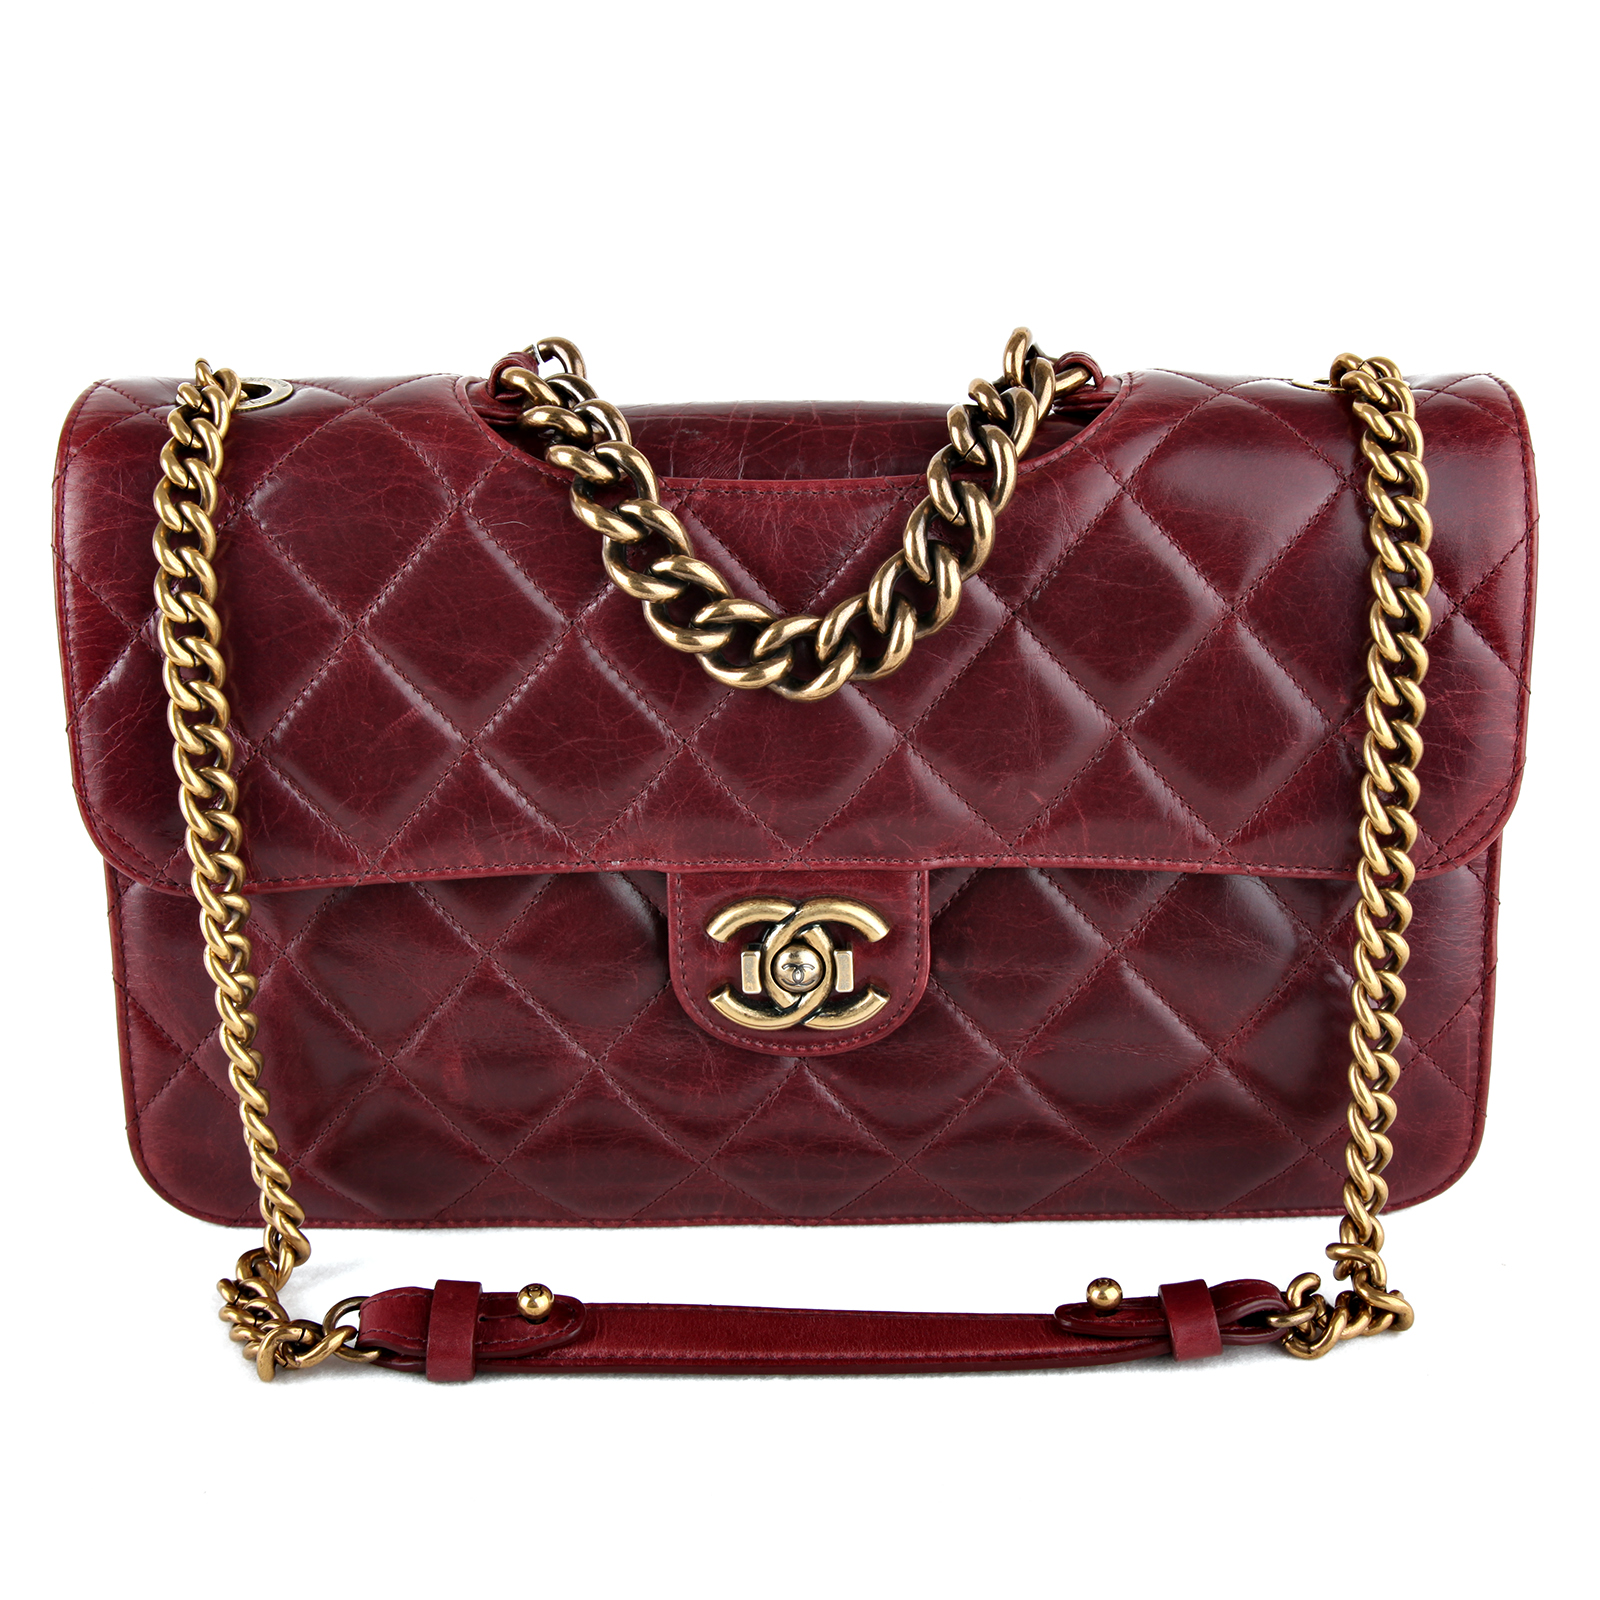 borse chanel originali usate original chanel bags used pre